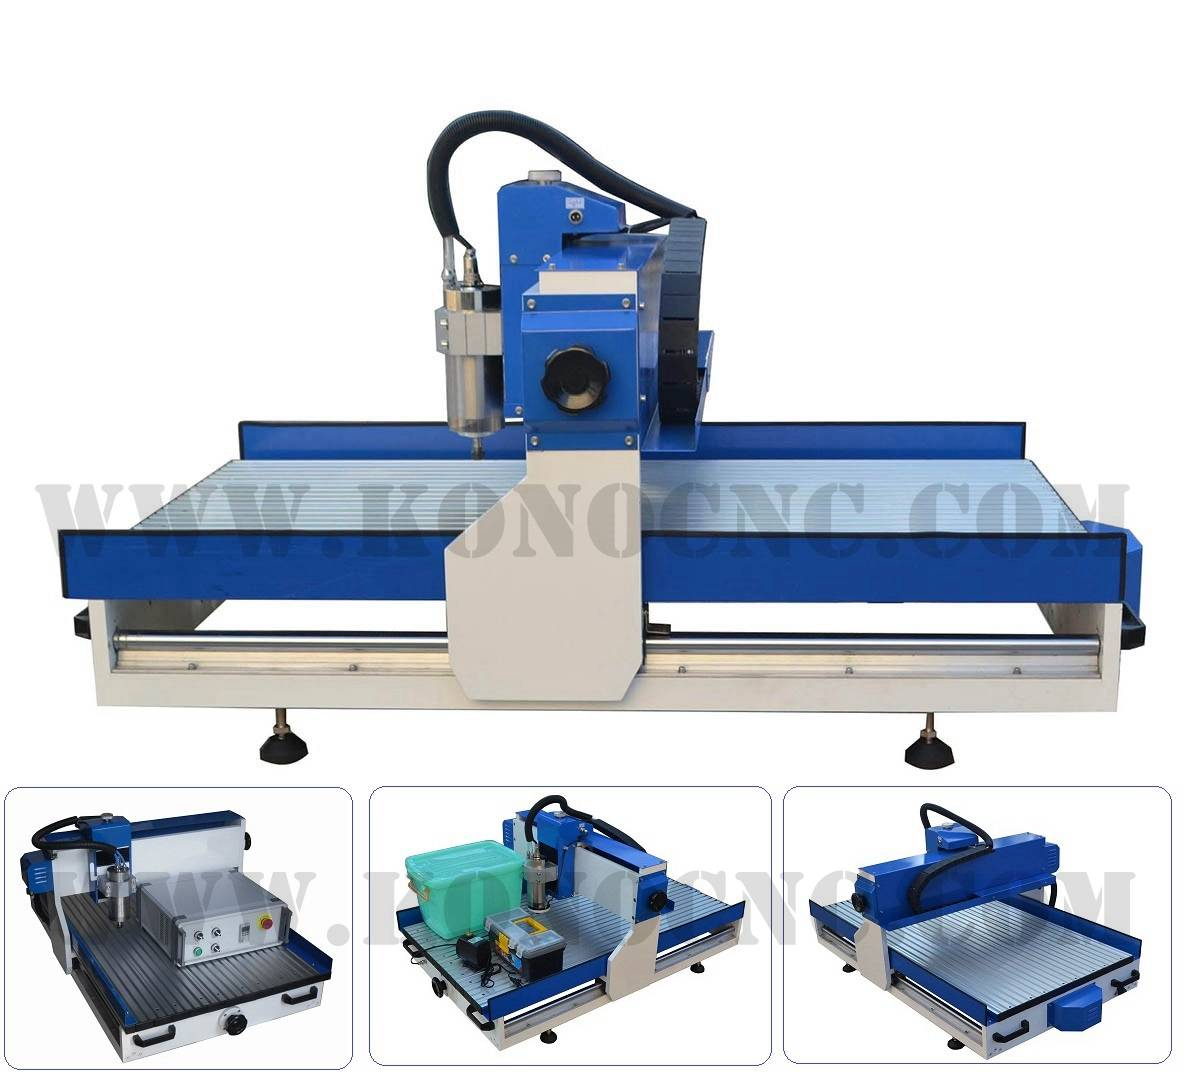 Hot Sale mini cnc engraving machine 6090 with USB and mach3 controller